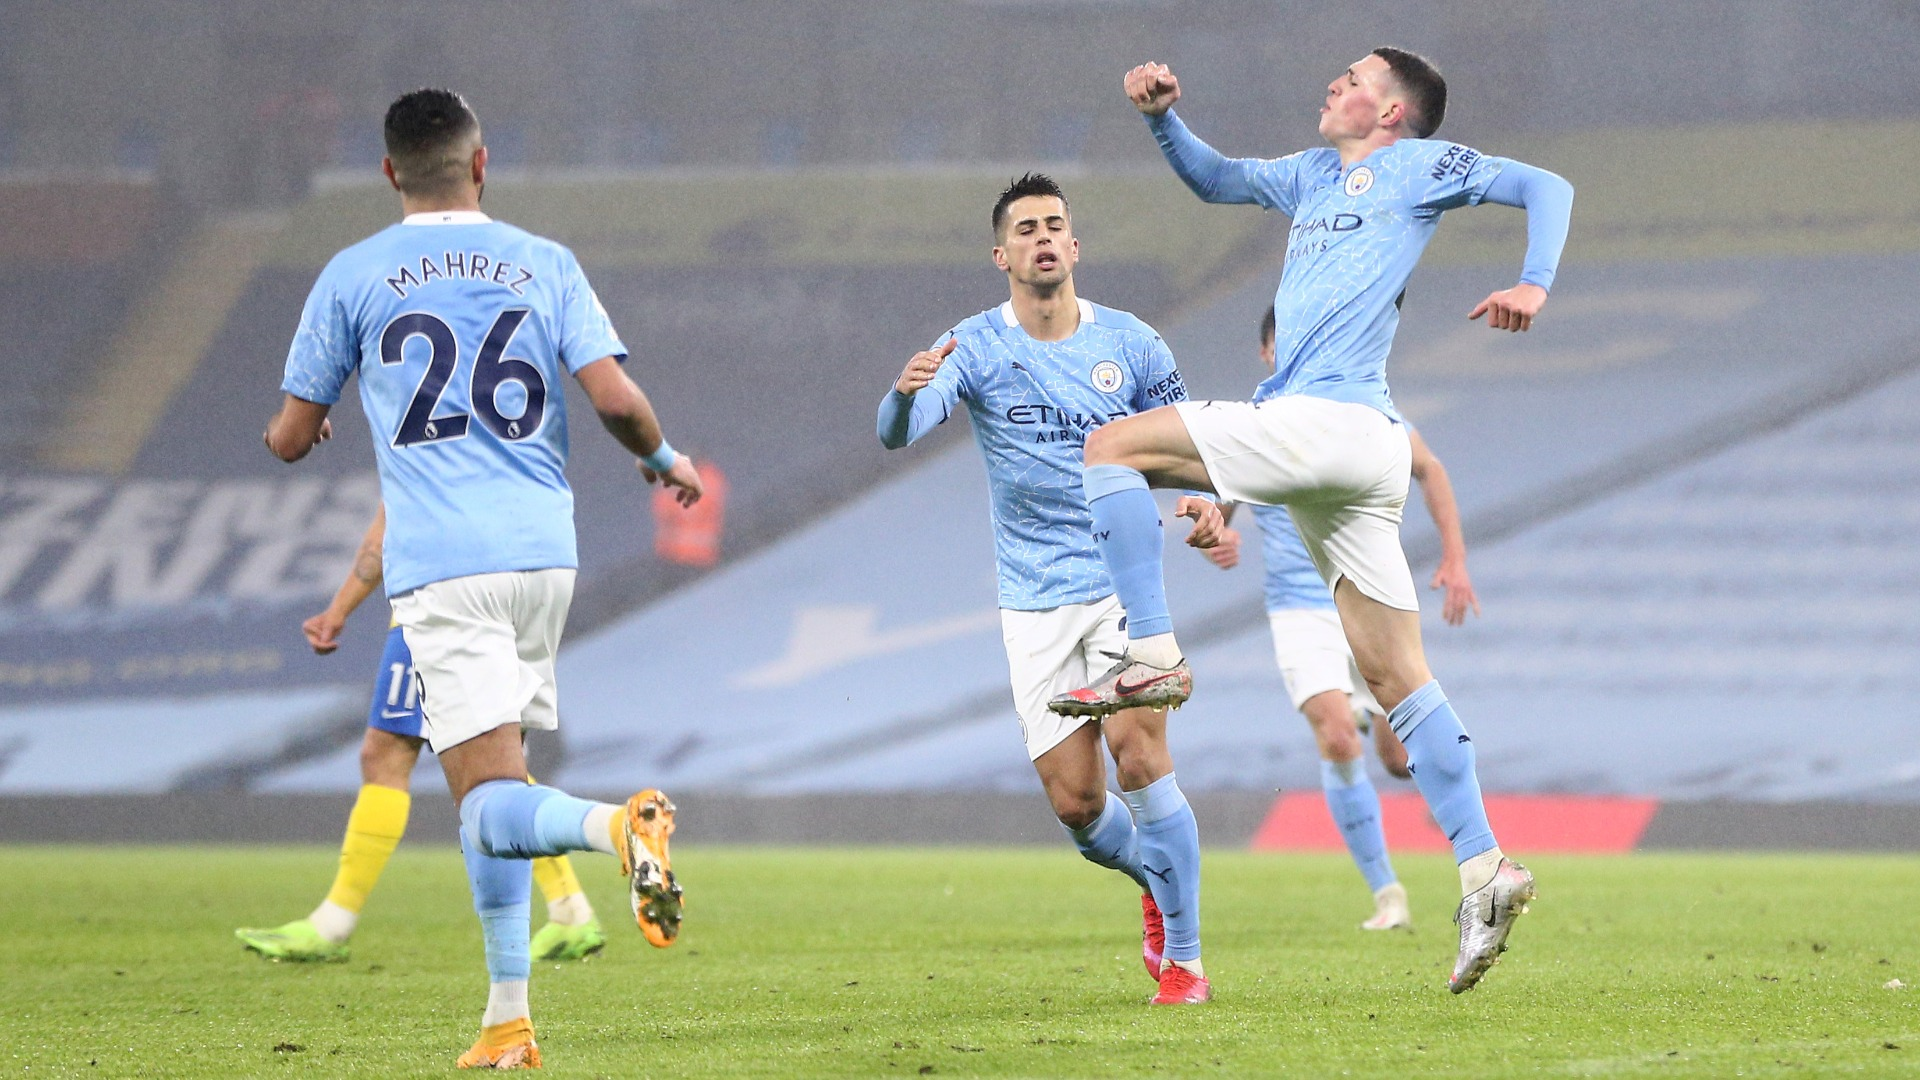 Phil Foden scored his eighth goal of the season in all competitions to give Manchester City a victory over Brighton and Hove Albion.